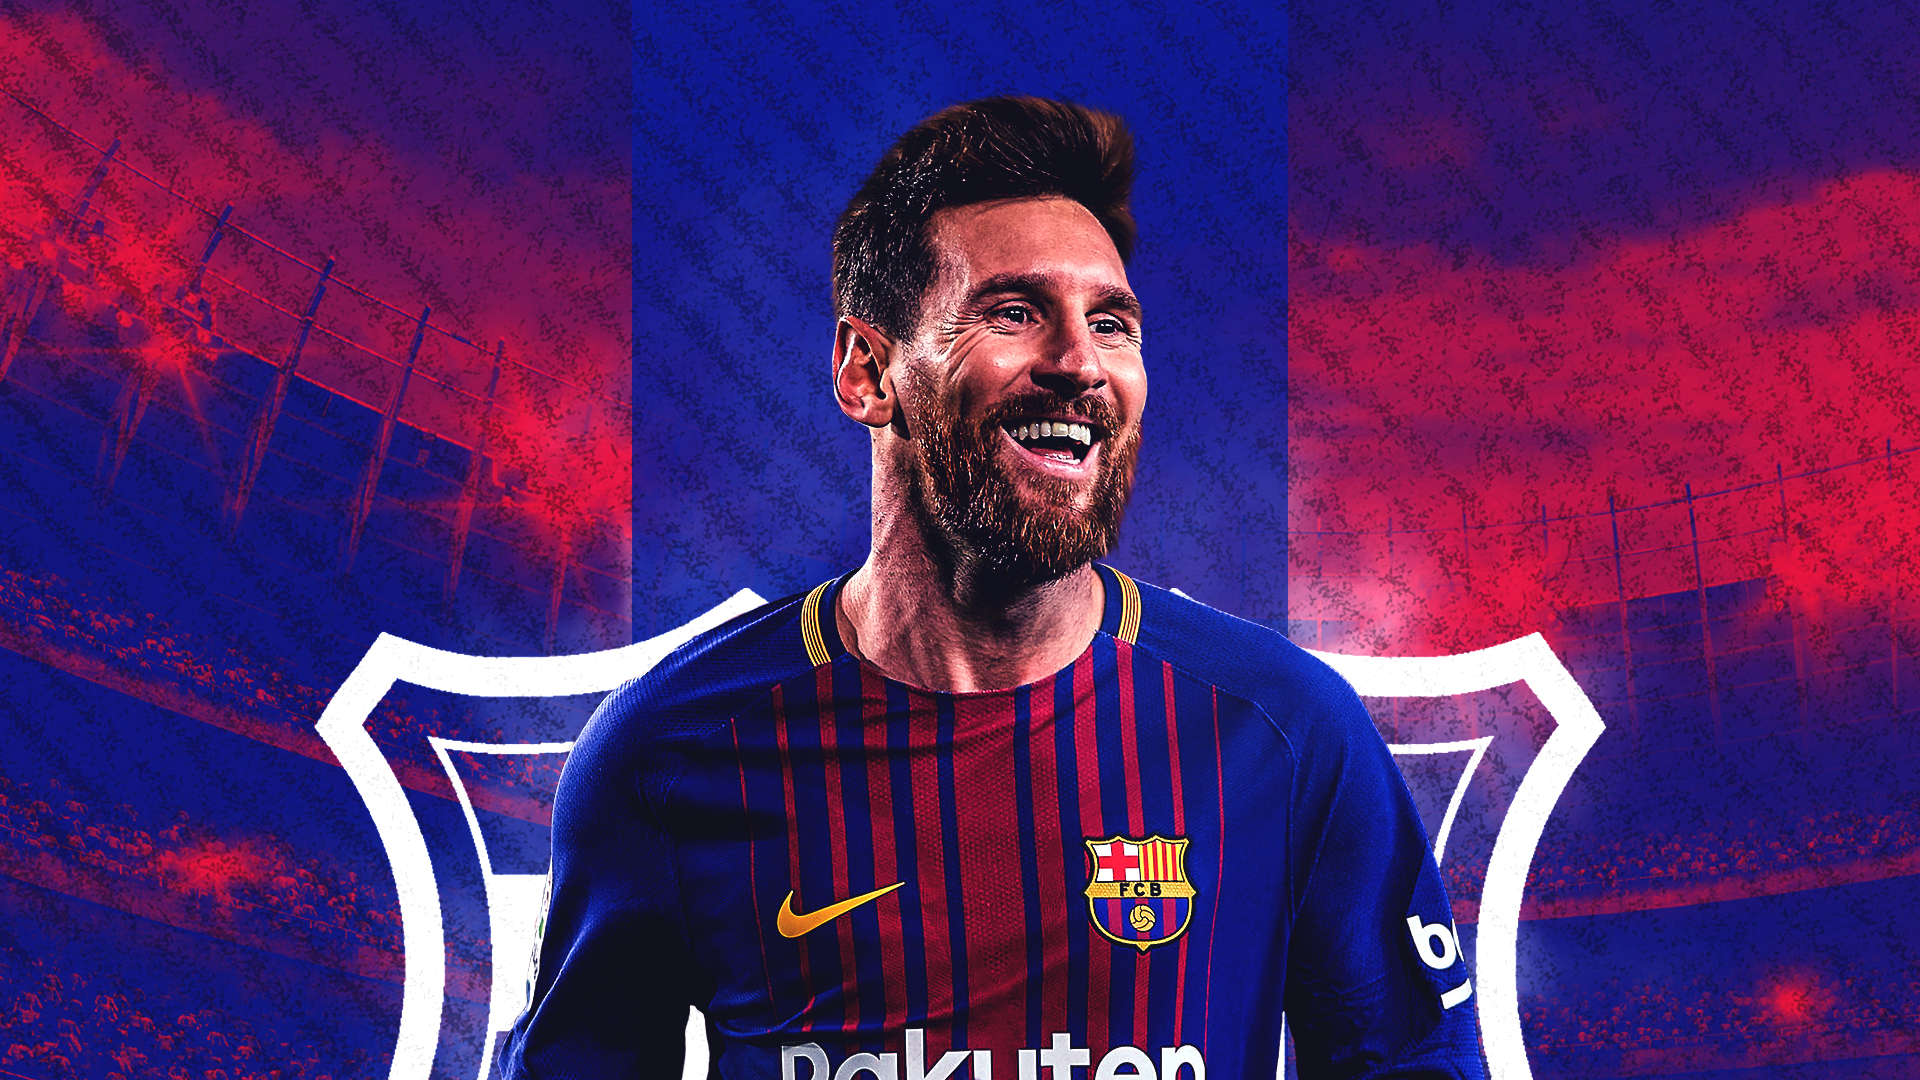 Leo Messi Lionel Messi Wallpapers Hd Wallpapers